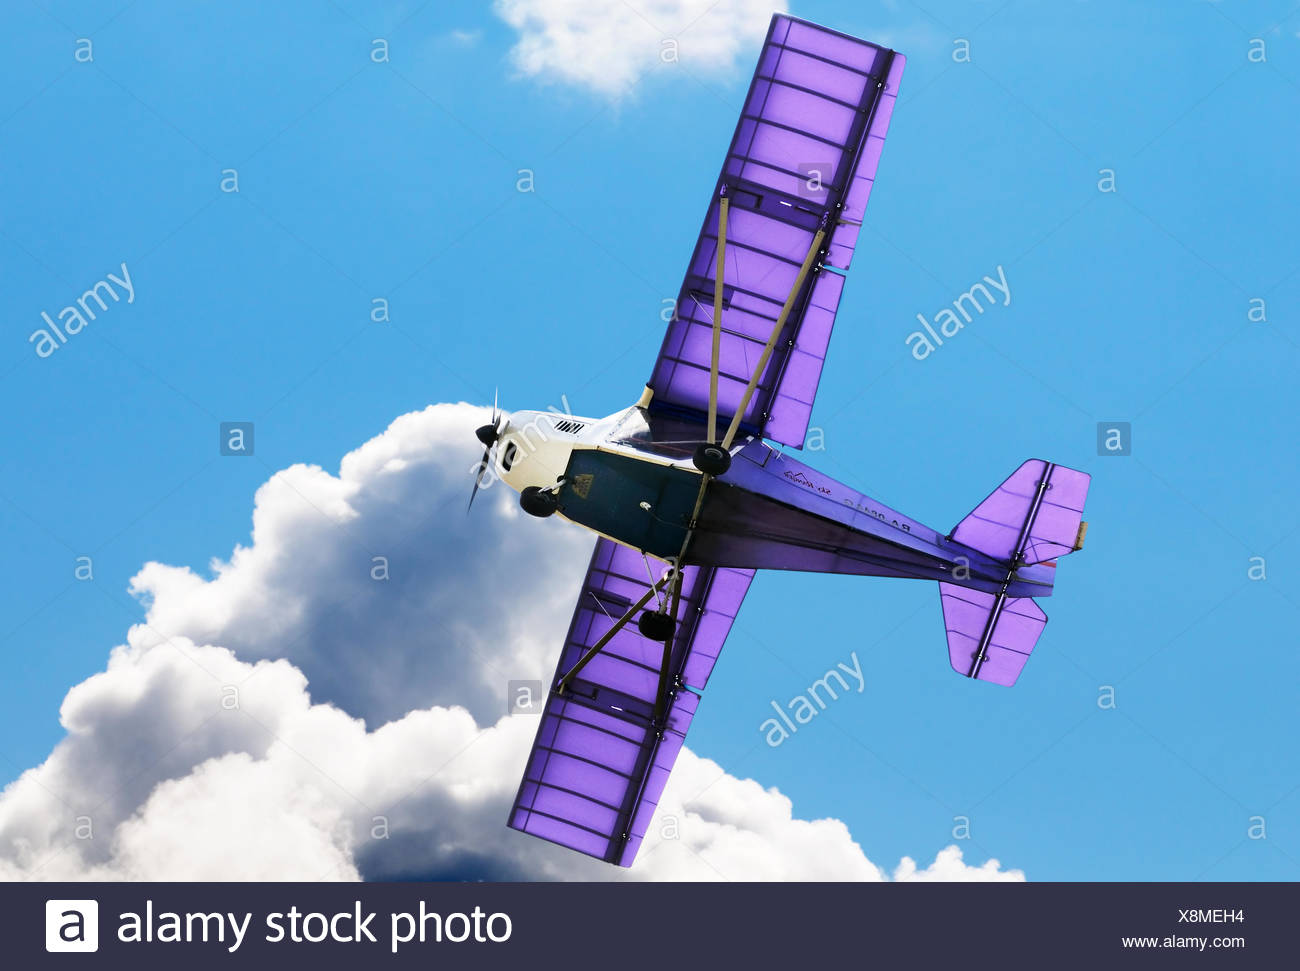 Flying private propeller-driven airplane over blue sky - Stock Image